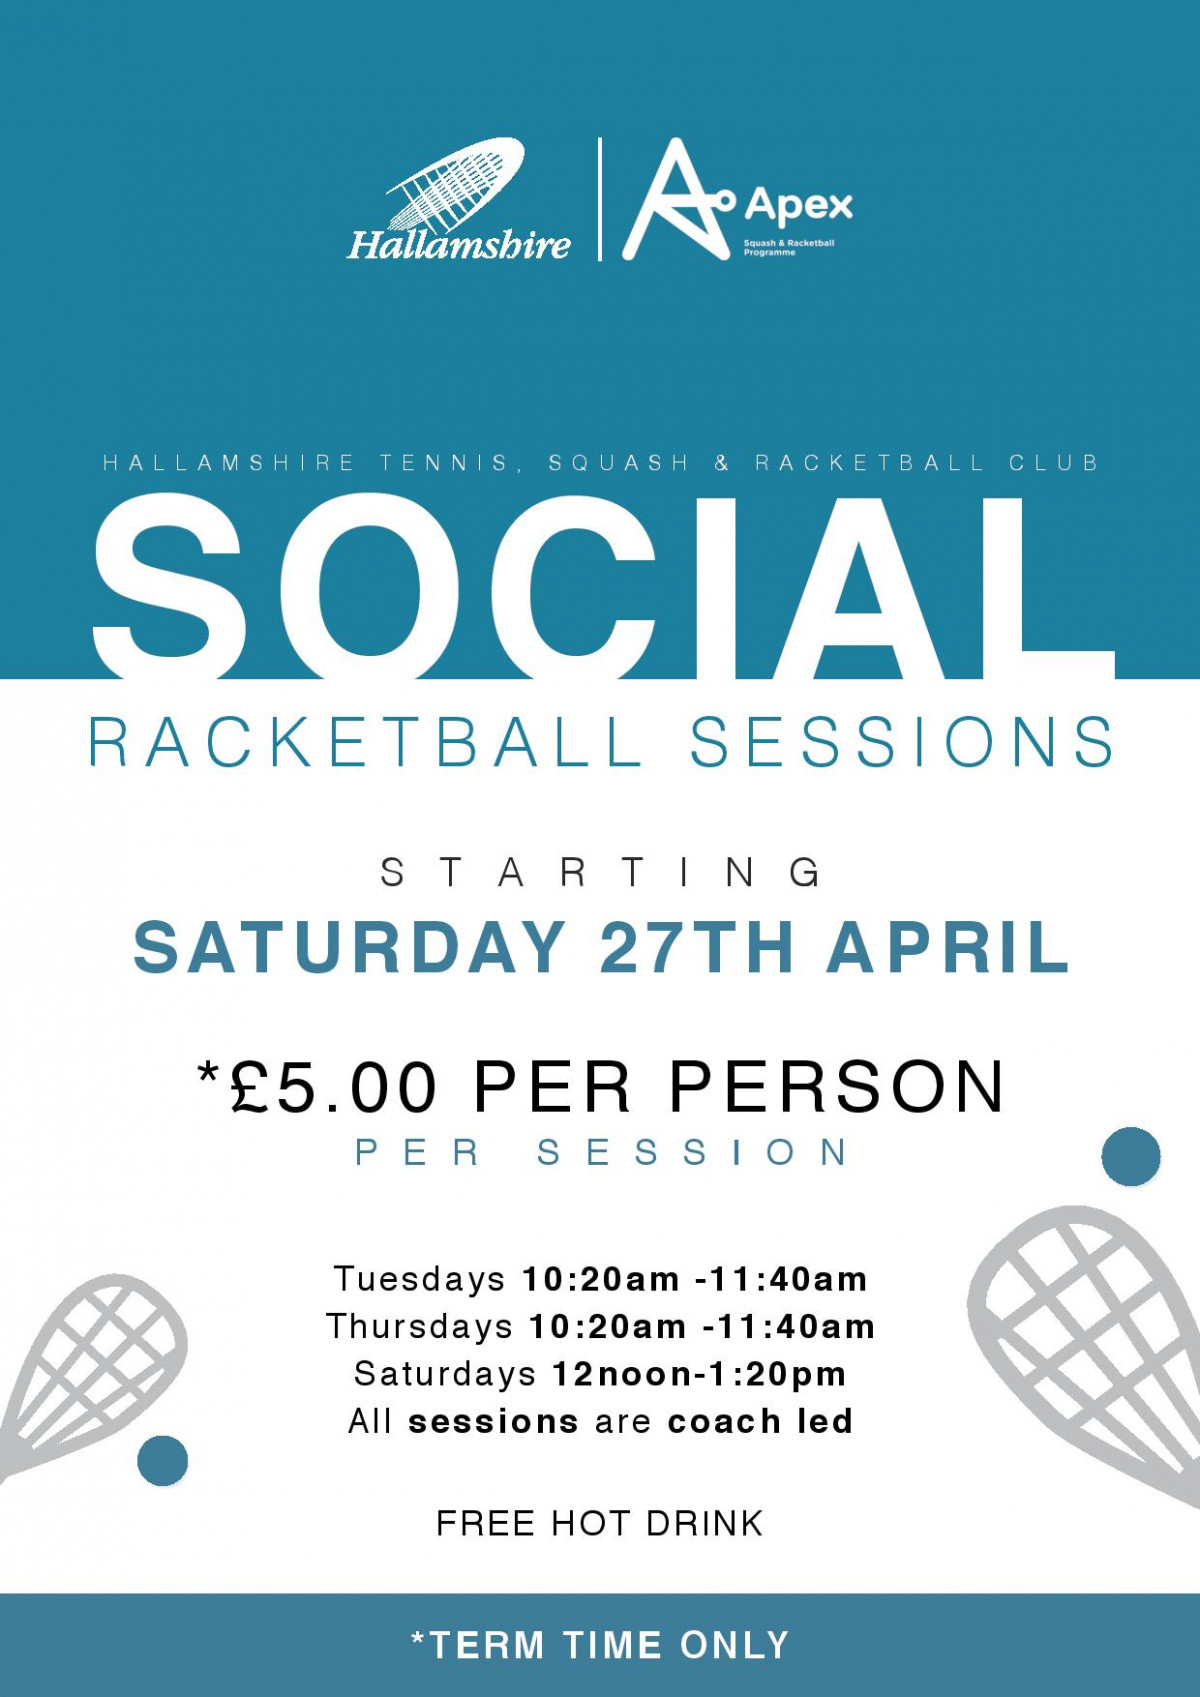 Social Racketball Drop-In Sessions